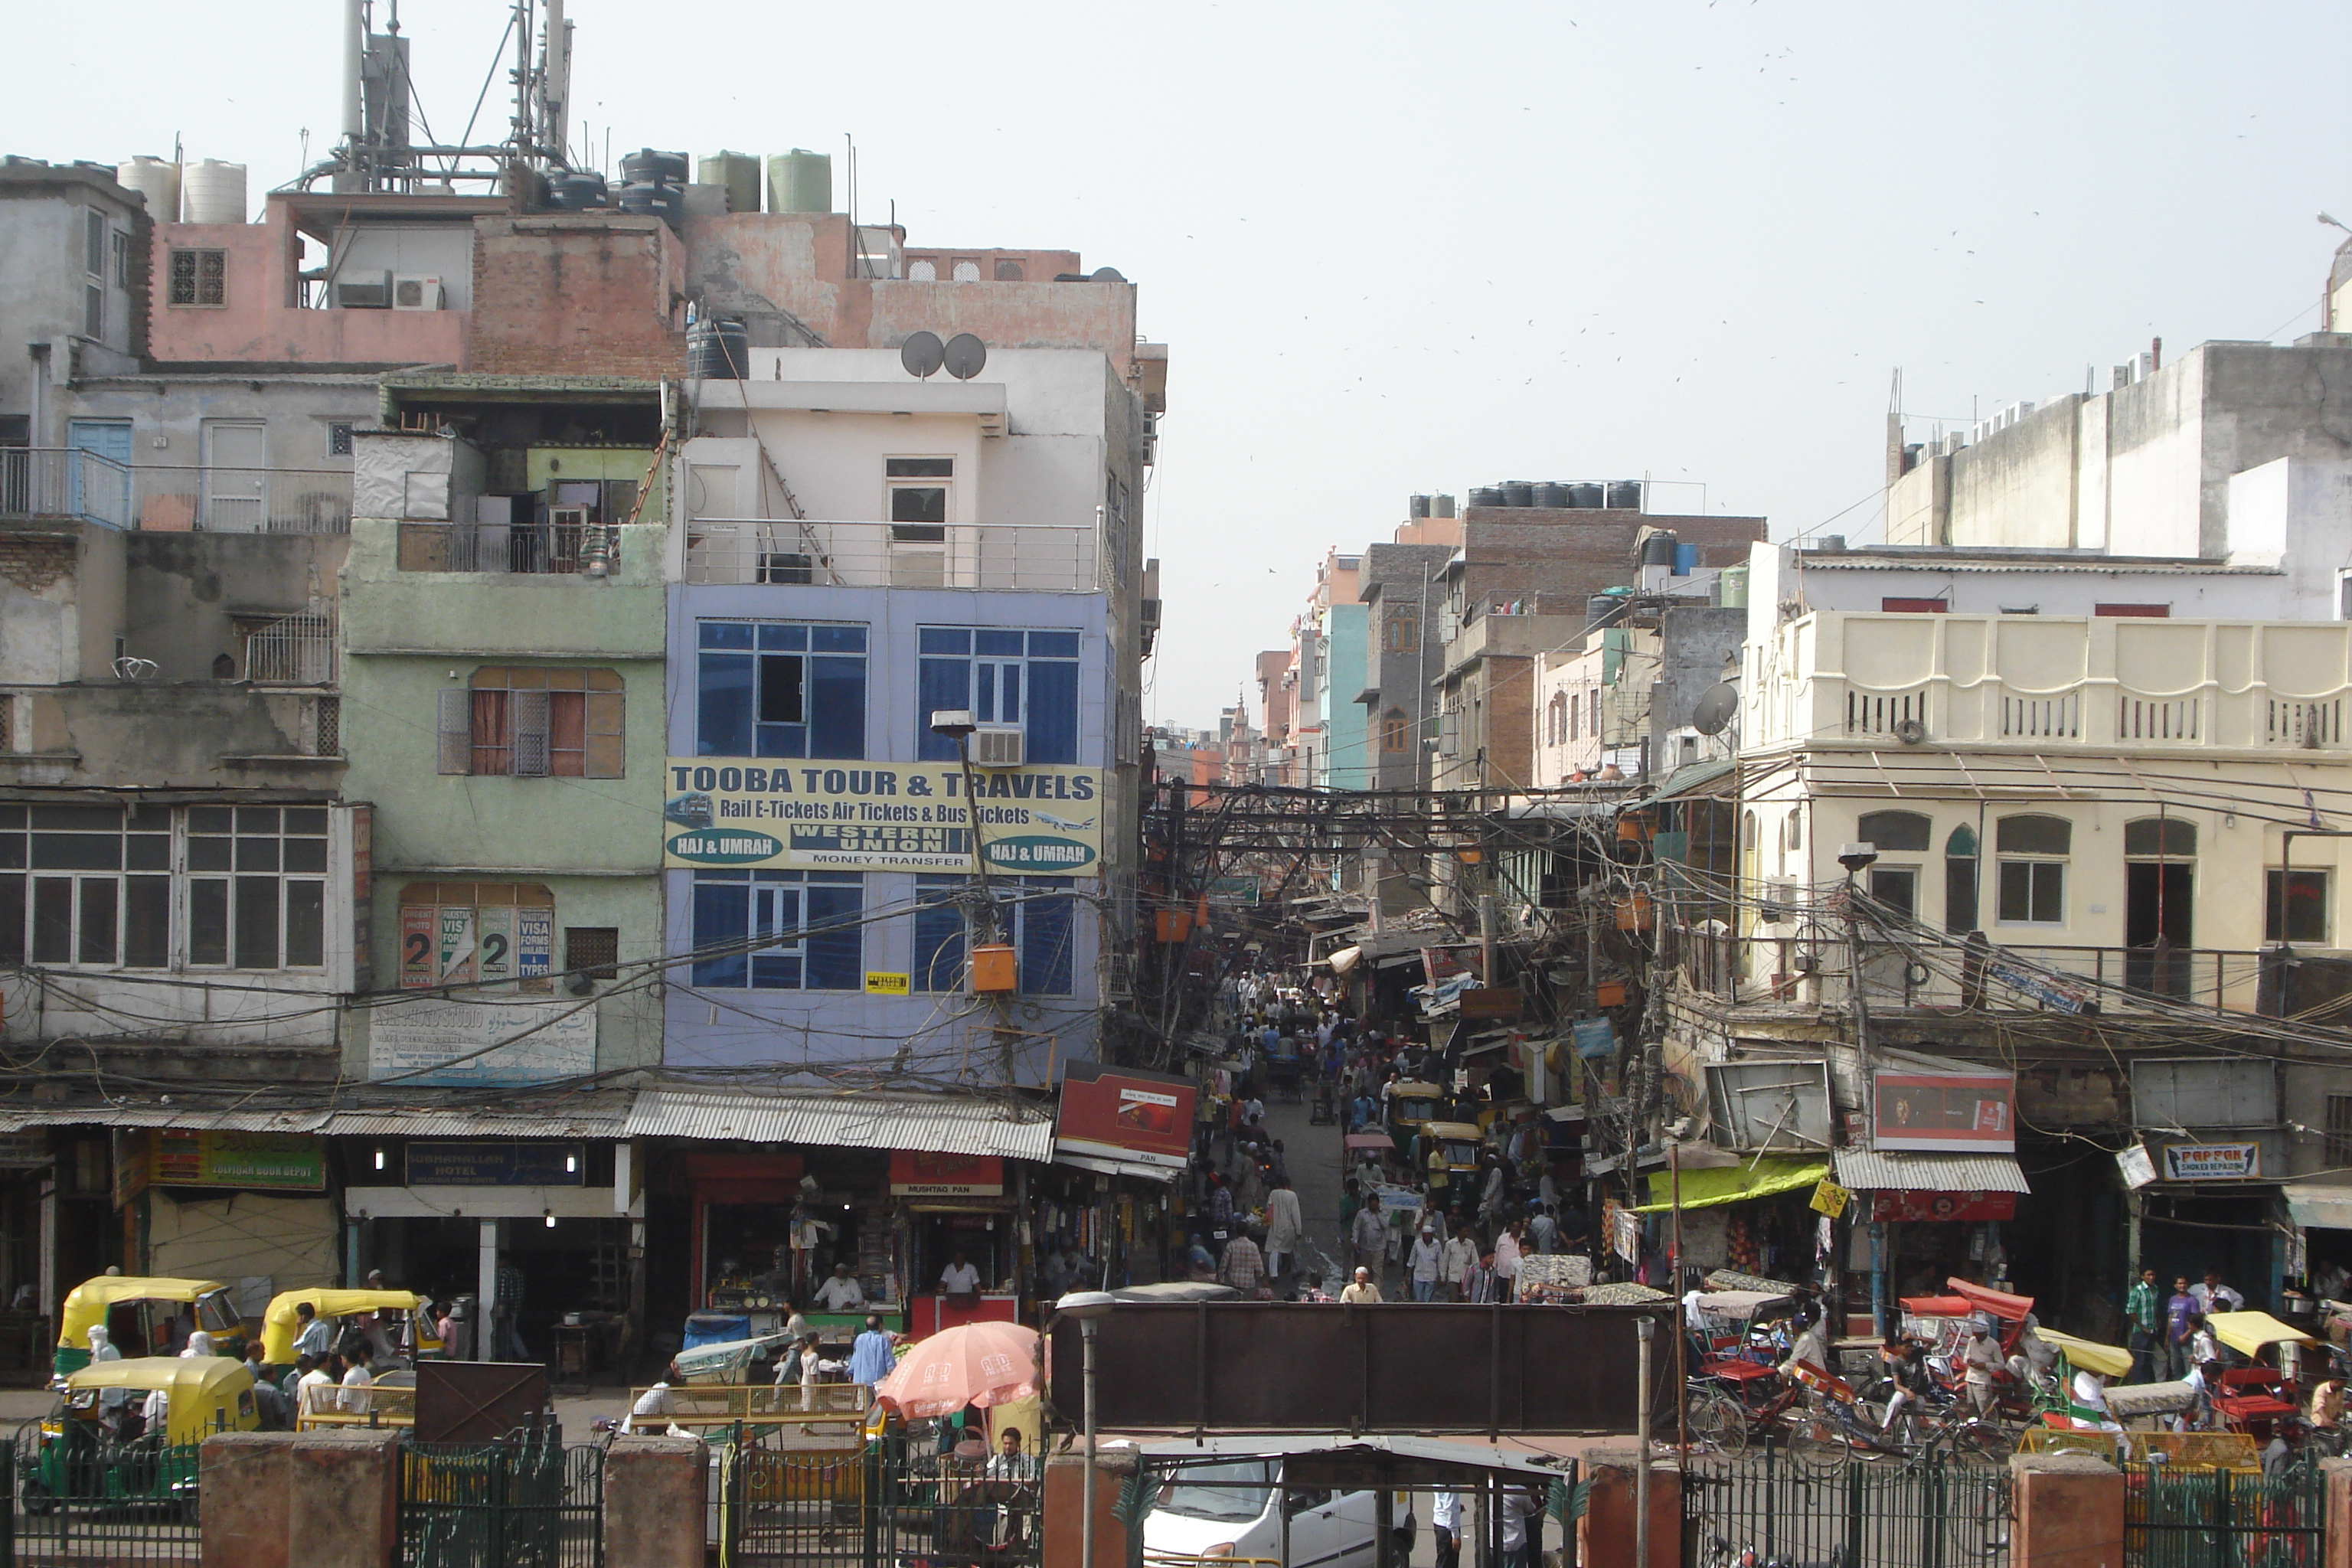 Another Day Of People Filling Streets >> amritsar | sonámbula